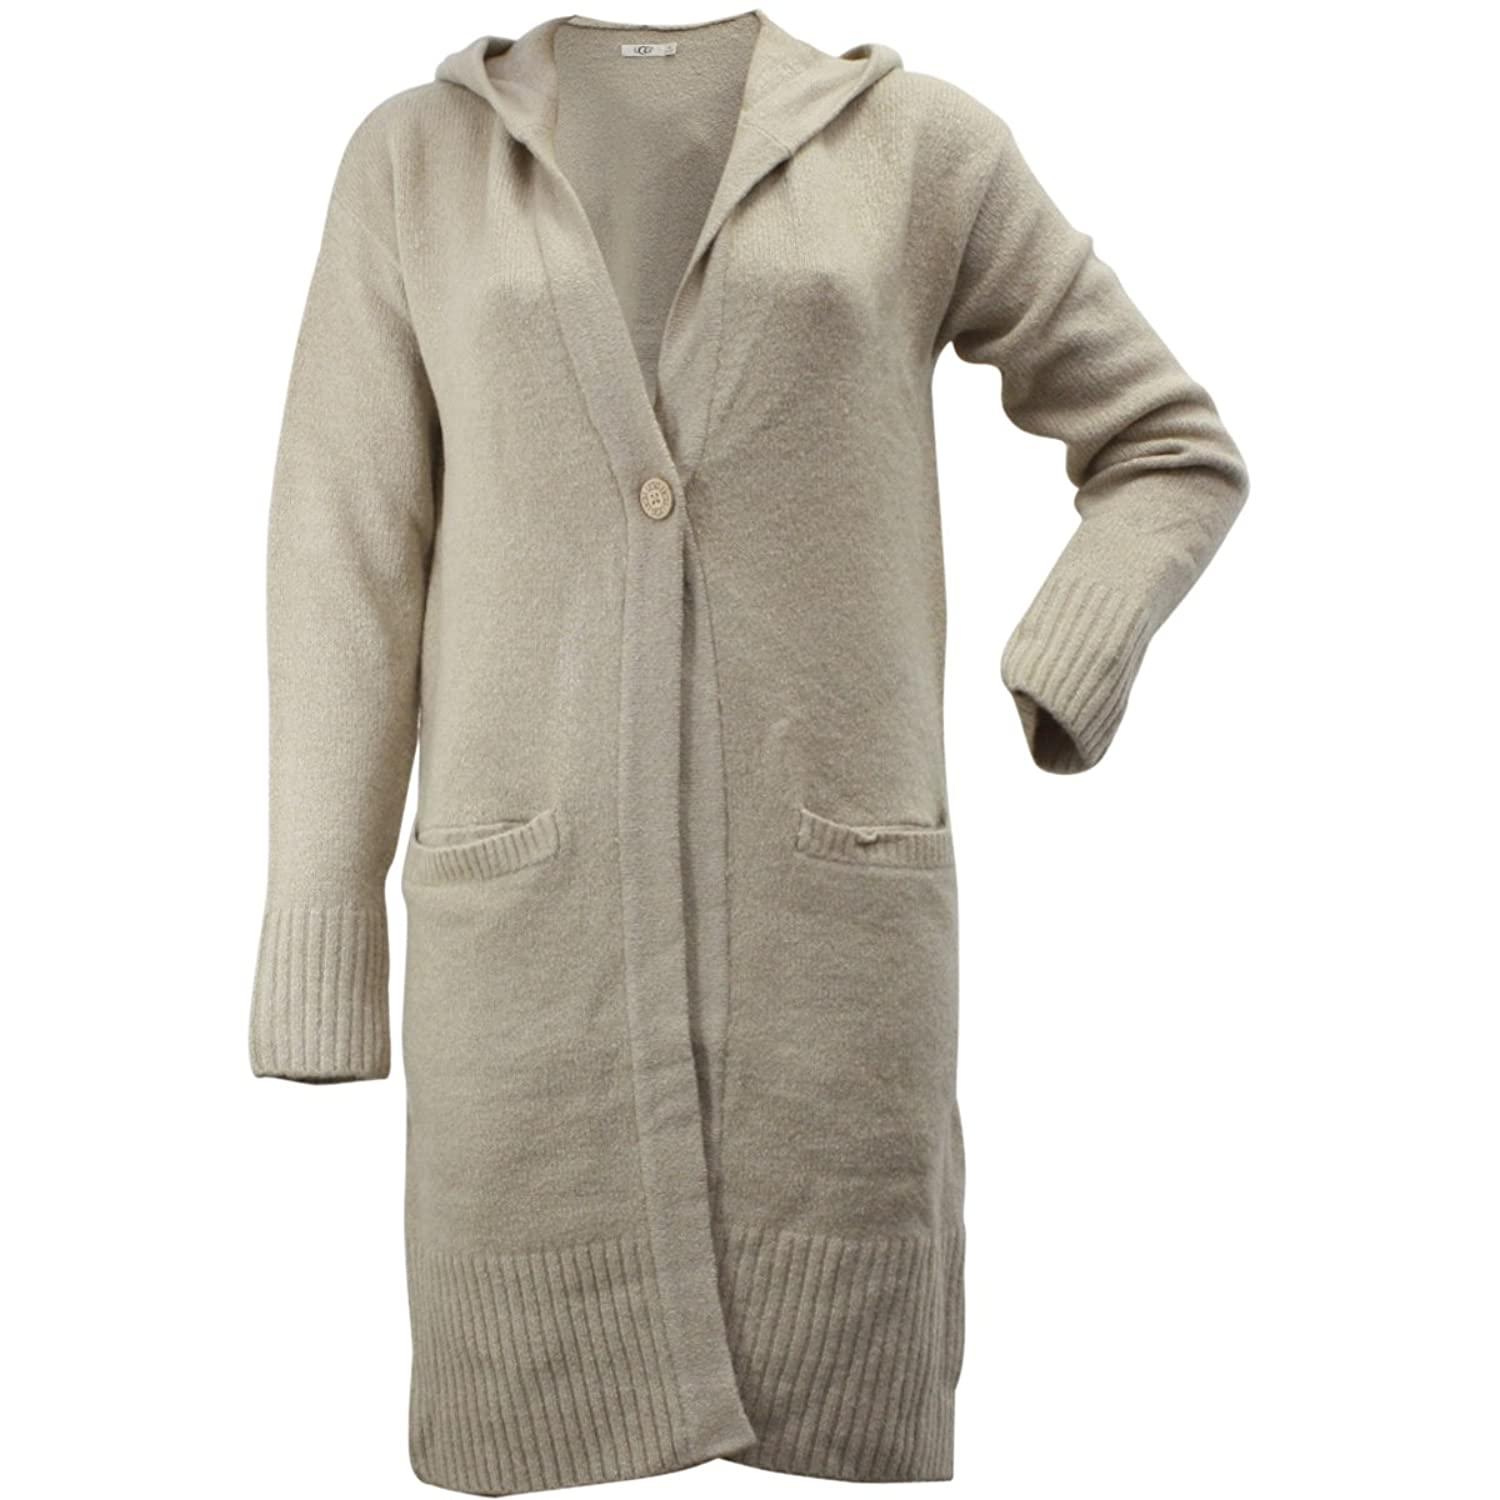 Ugg Women's Judith Single Button Natural Hooded Cardigan Sweater ...